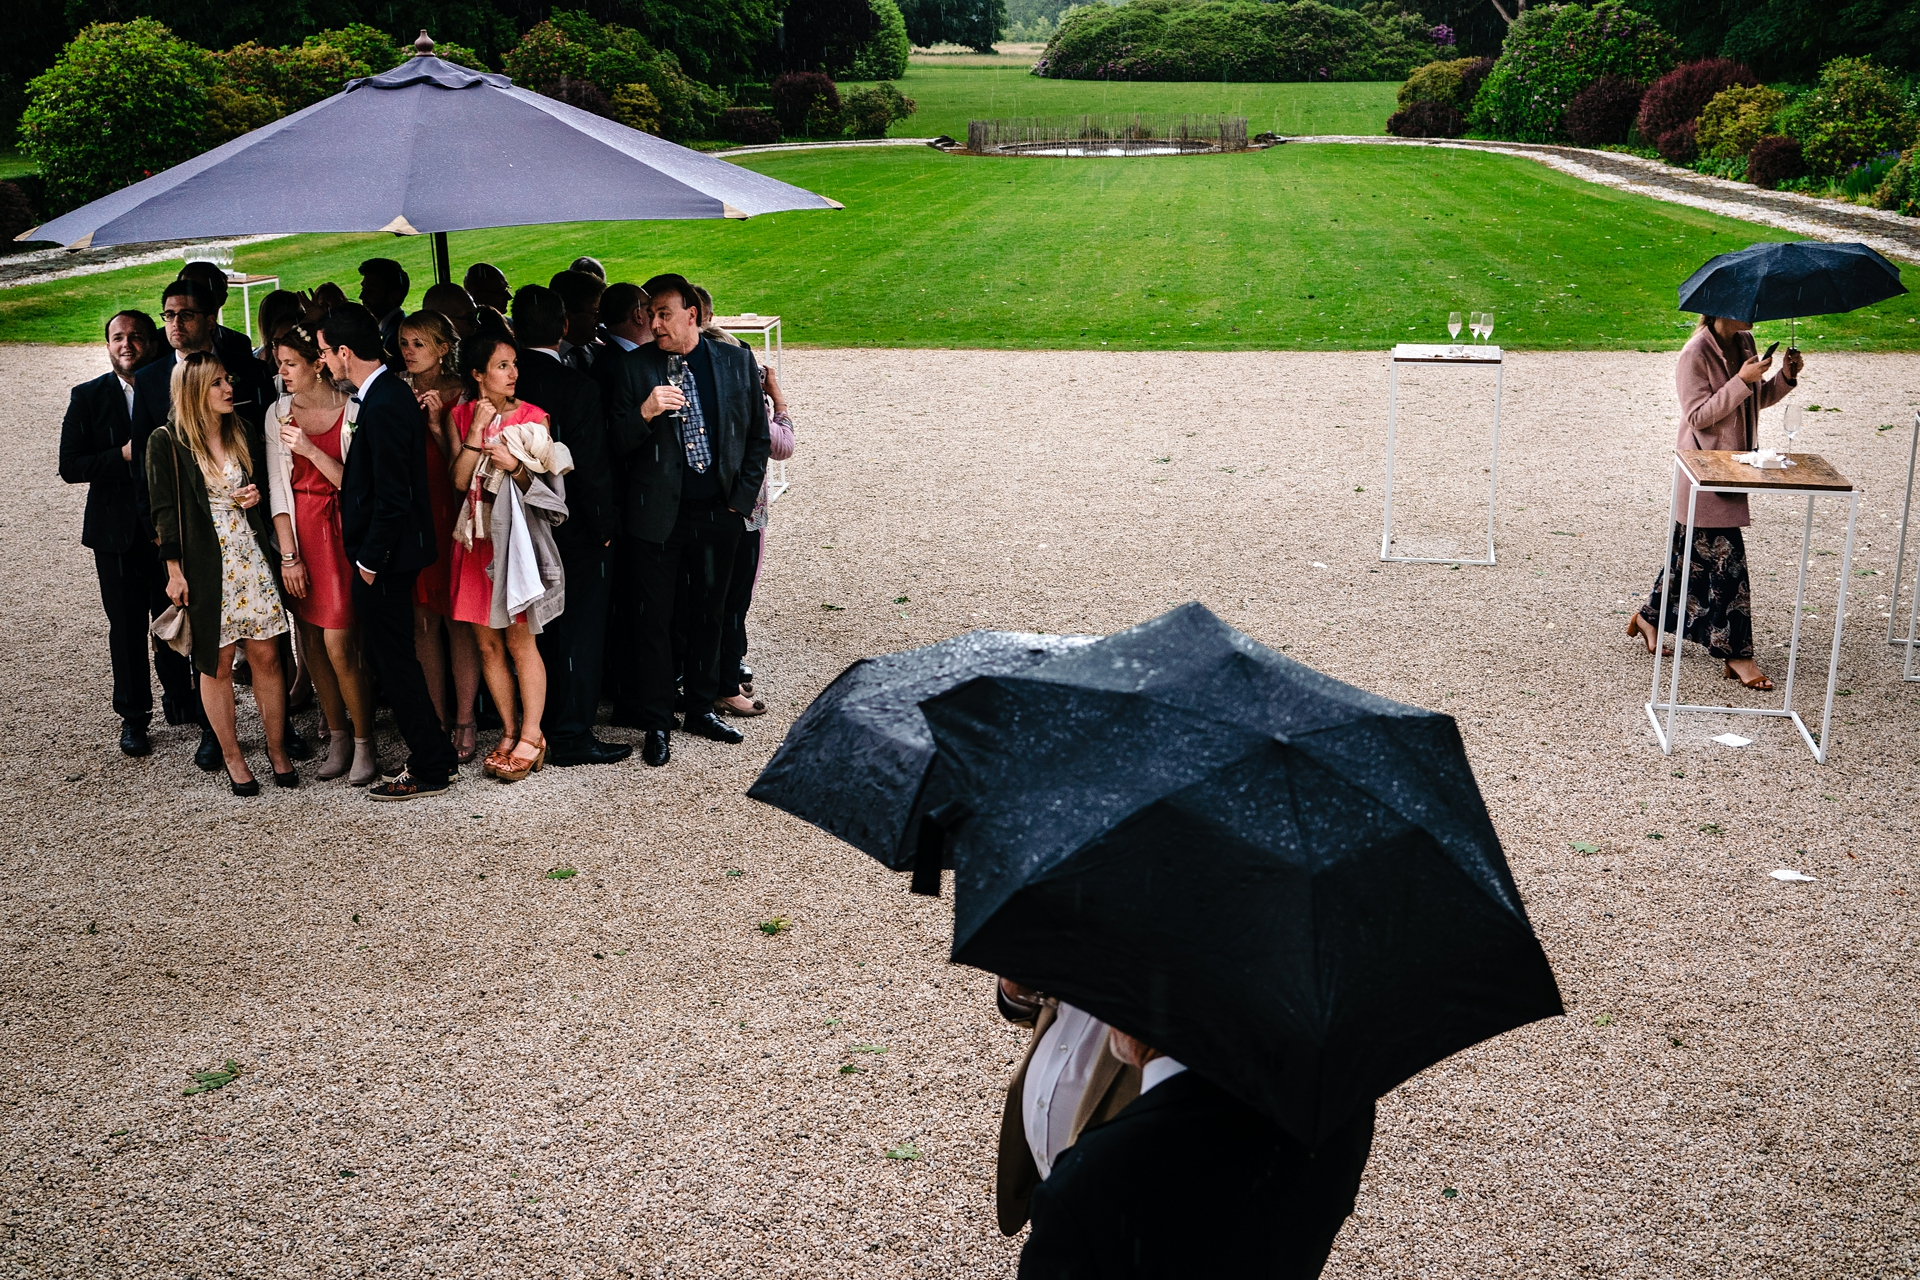 Wedding Photos when it rains | Surprise rainfall at this wedding reception had the guests taking shelter under umbrellas.